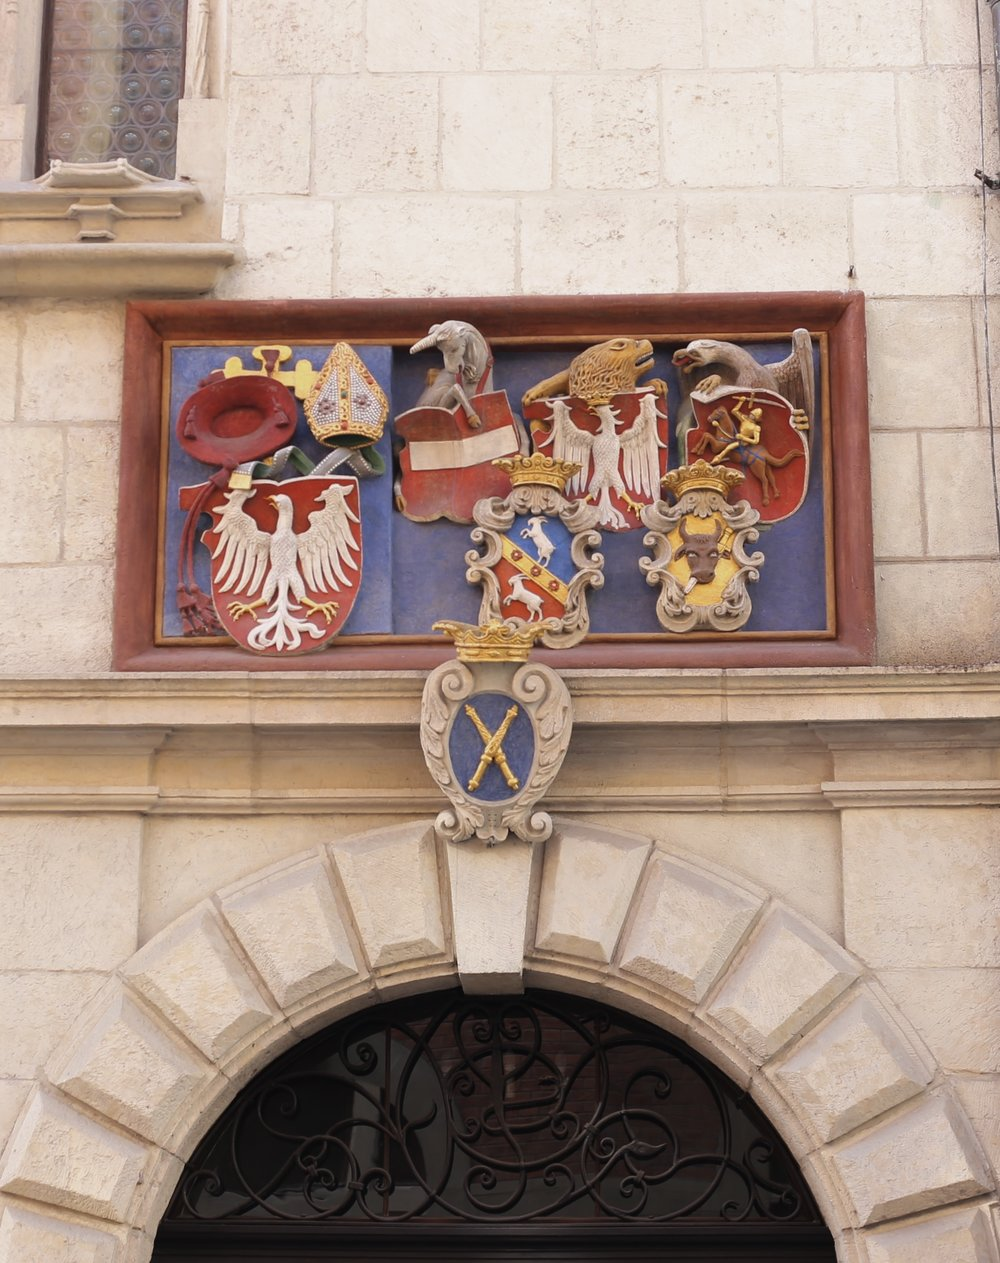 Sculpted and painted tympanum showing a coat of arms and an eagle.